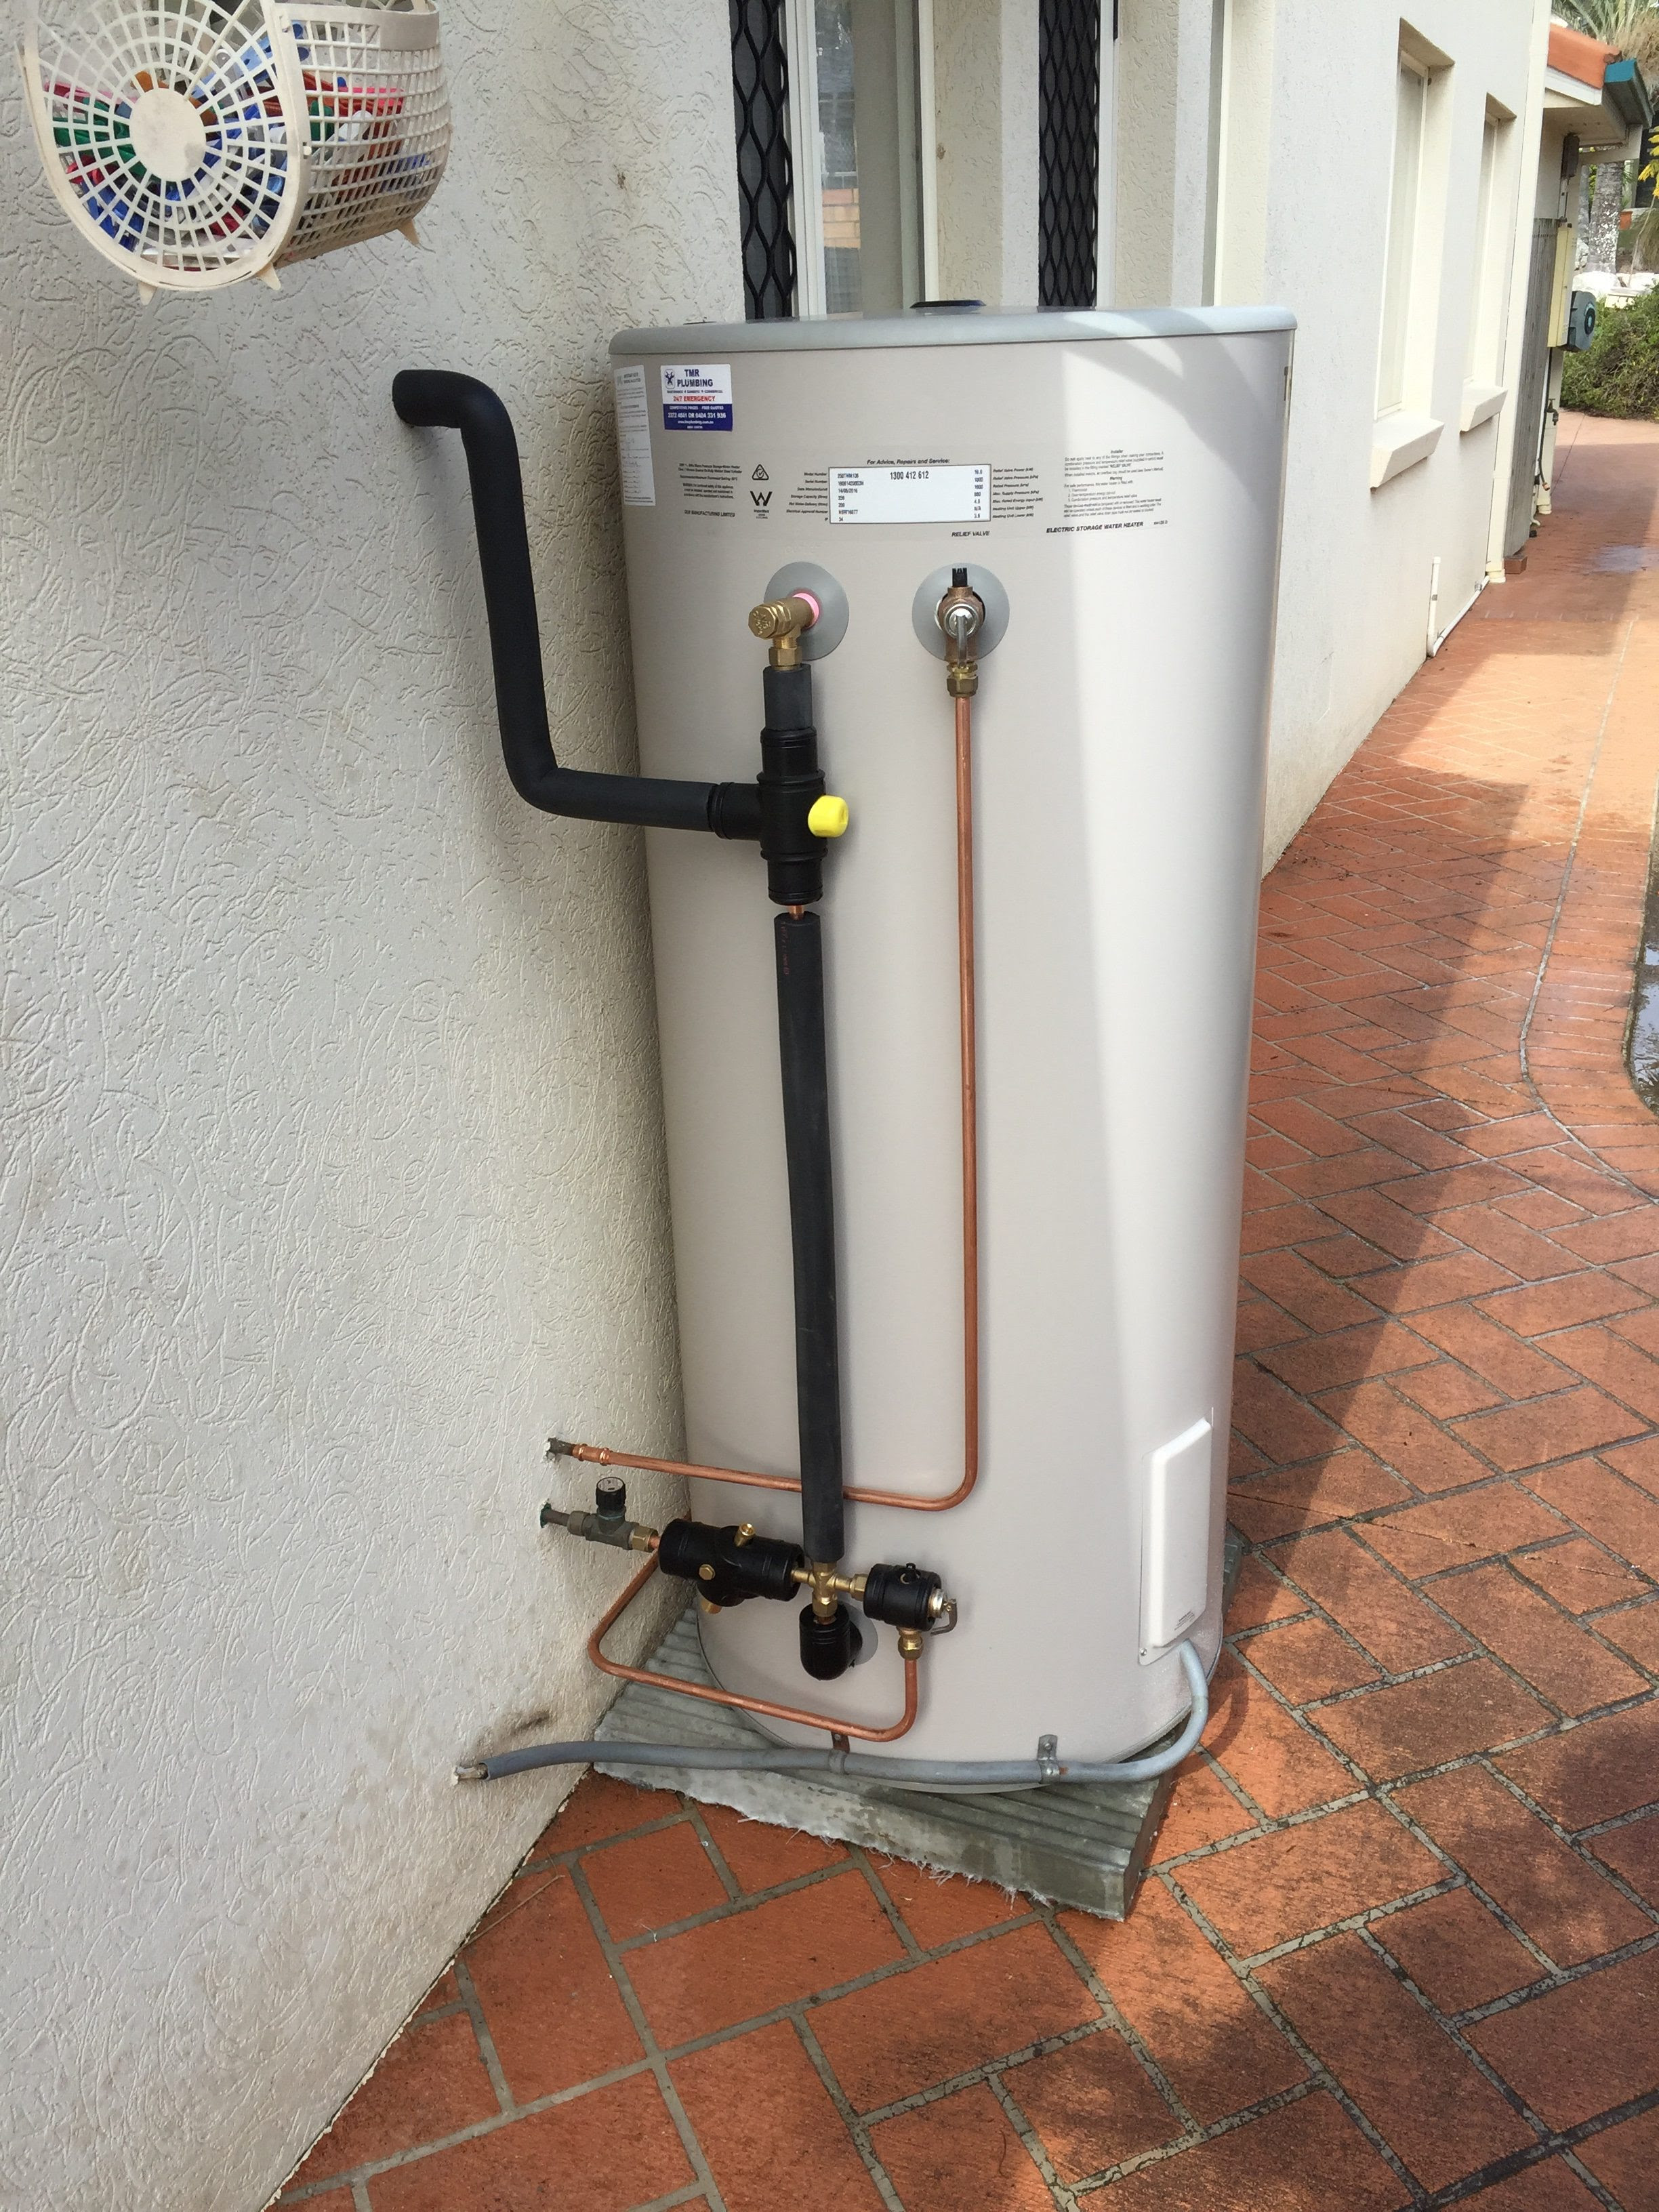 Hampshire Plumber: Basic components in a hot water system FAQ